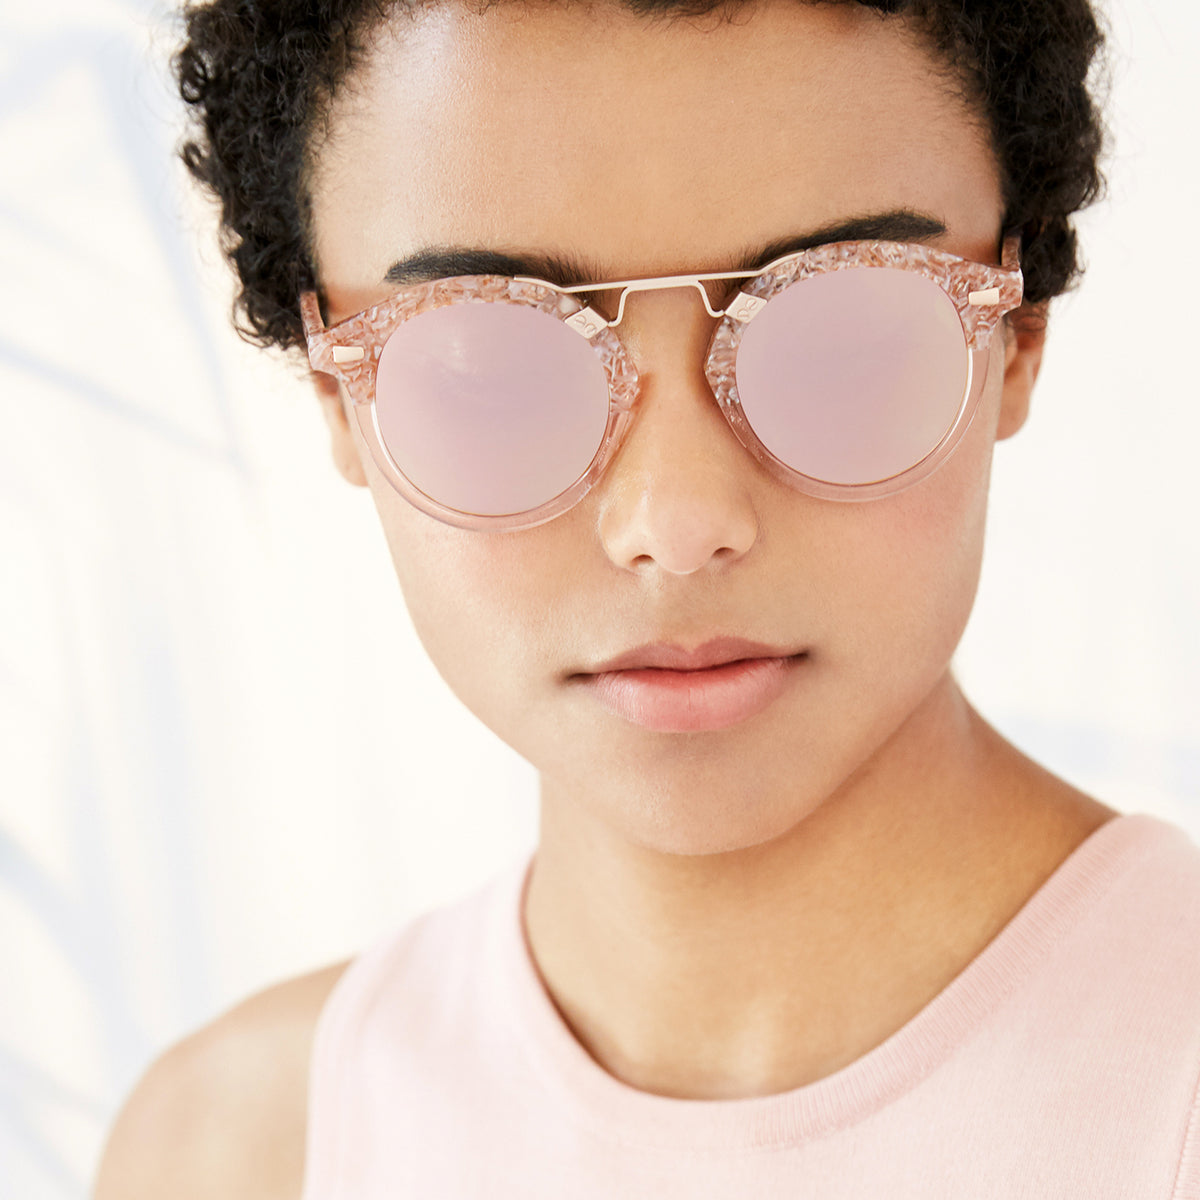 STL II | Camellia to Blush Rose Gold - round Sunglasses handcrafted from acetate featuring 24K gold hardware. | Womens